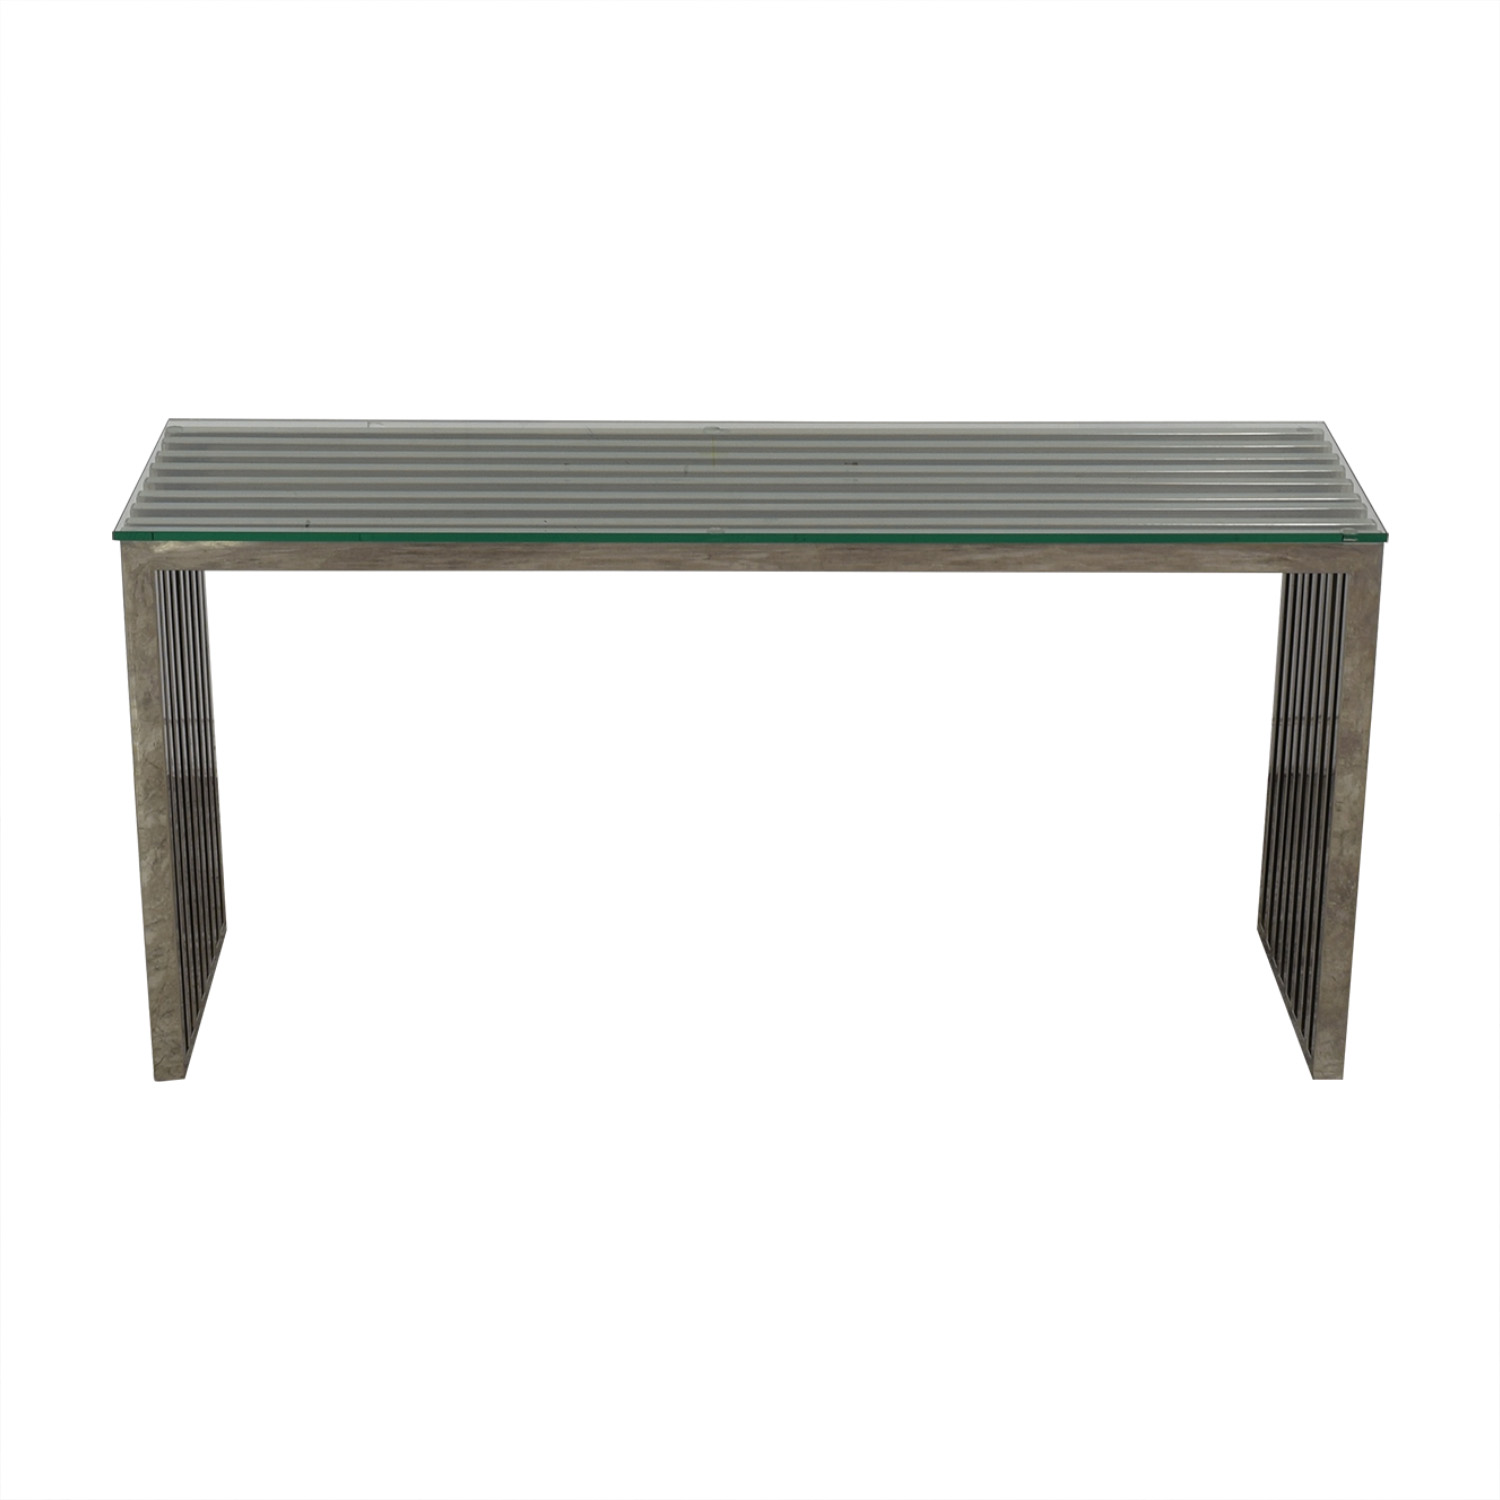 Tui Lifestyle Tui Lifestyle Stainless Steel Console dimensions